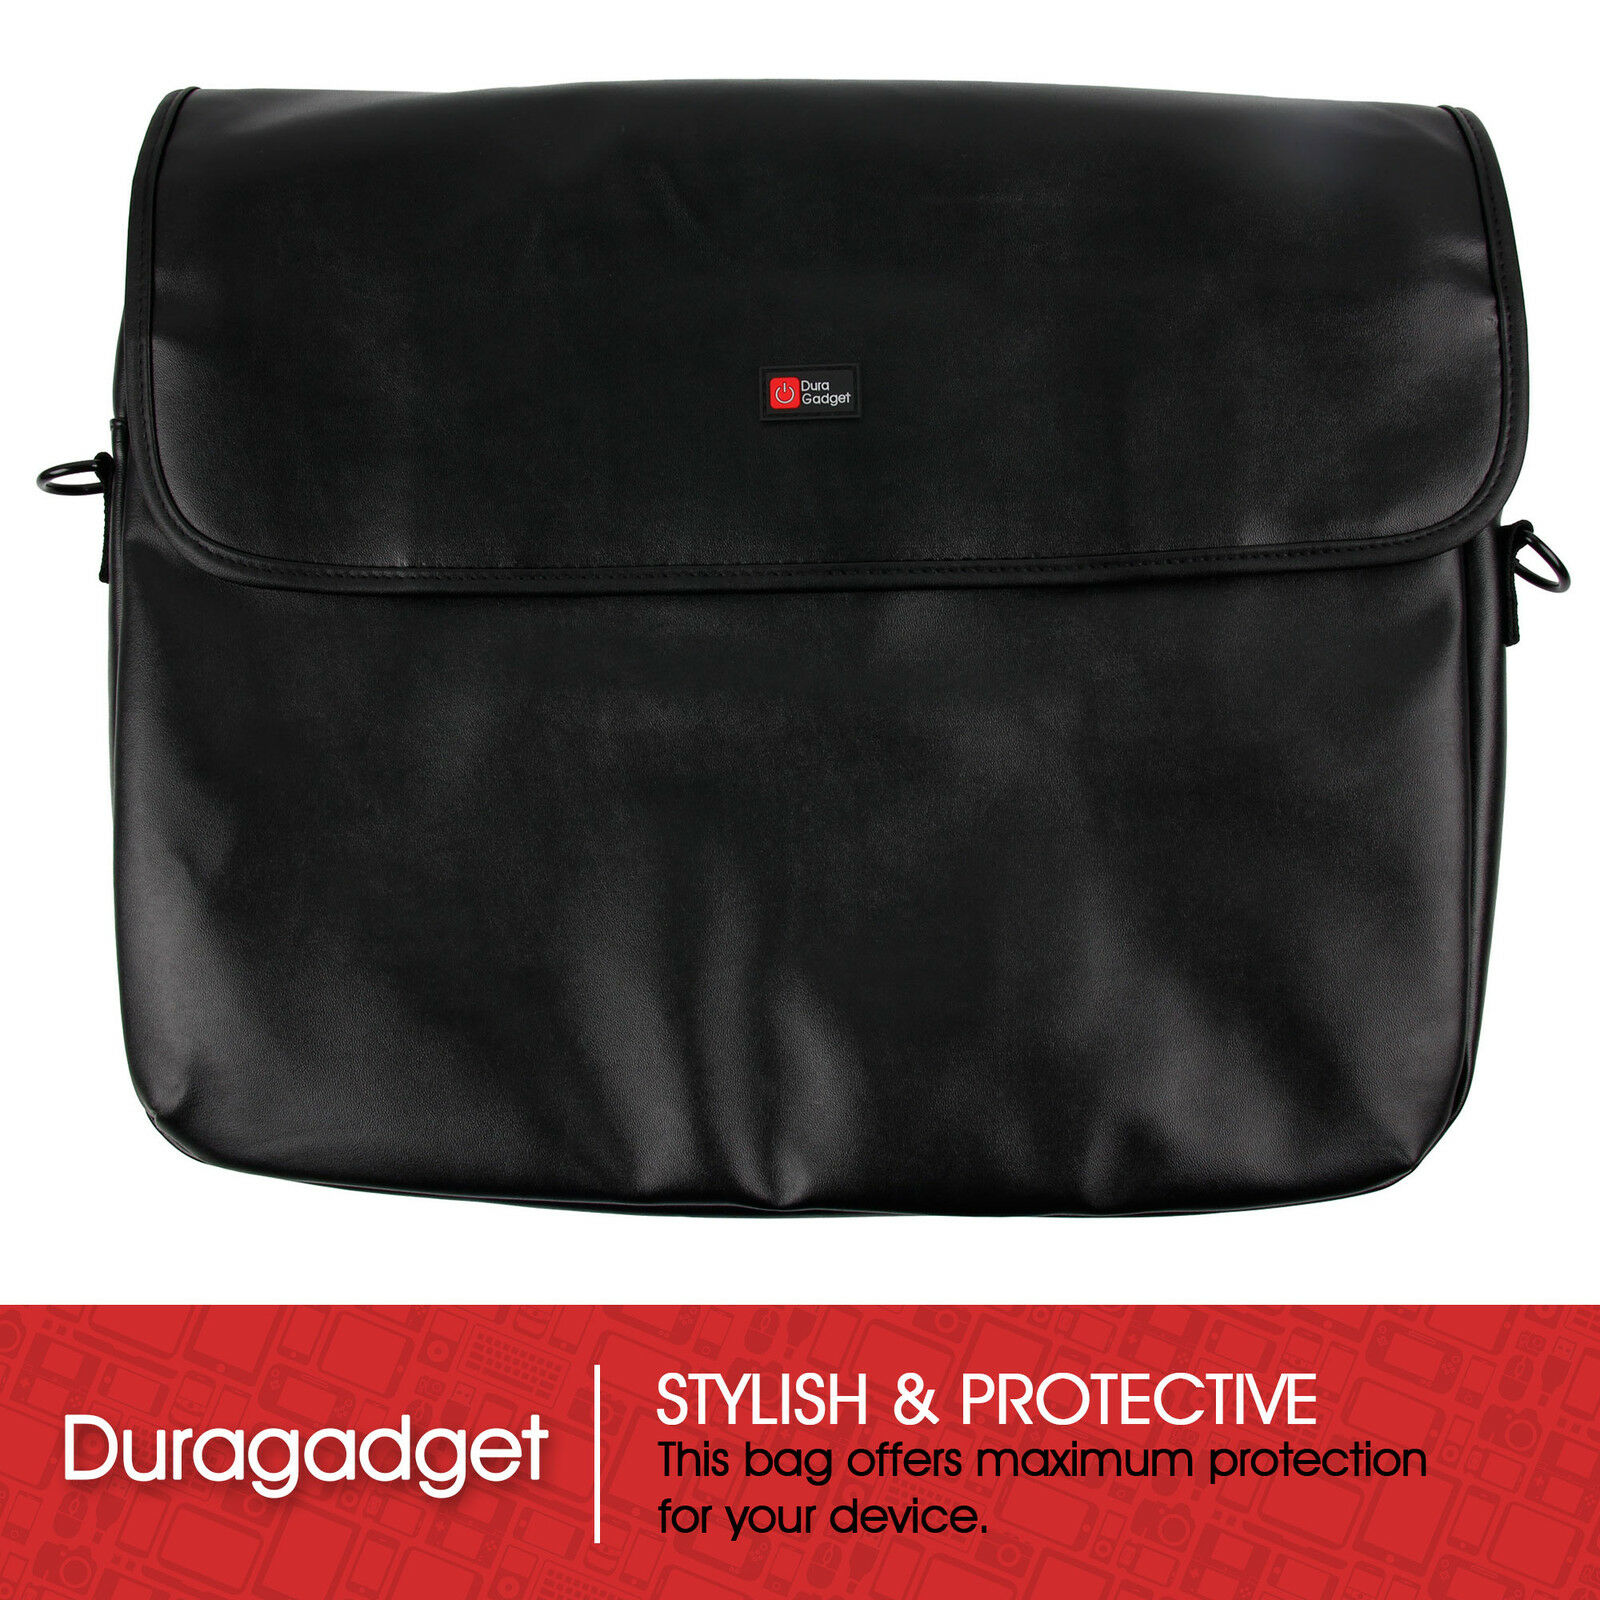 7dbdce772e22 Luxury PU Leather Bag in Black for HP Compaq 15-h200ns E1 / 255 G3 Laptops